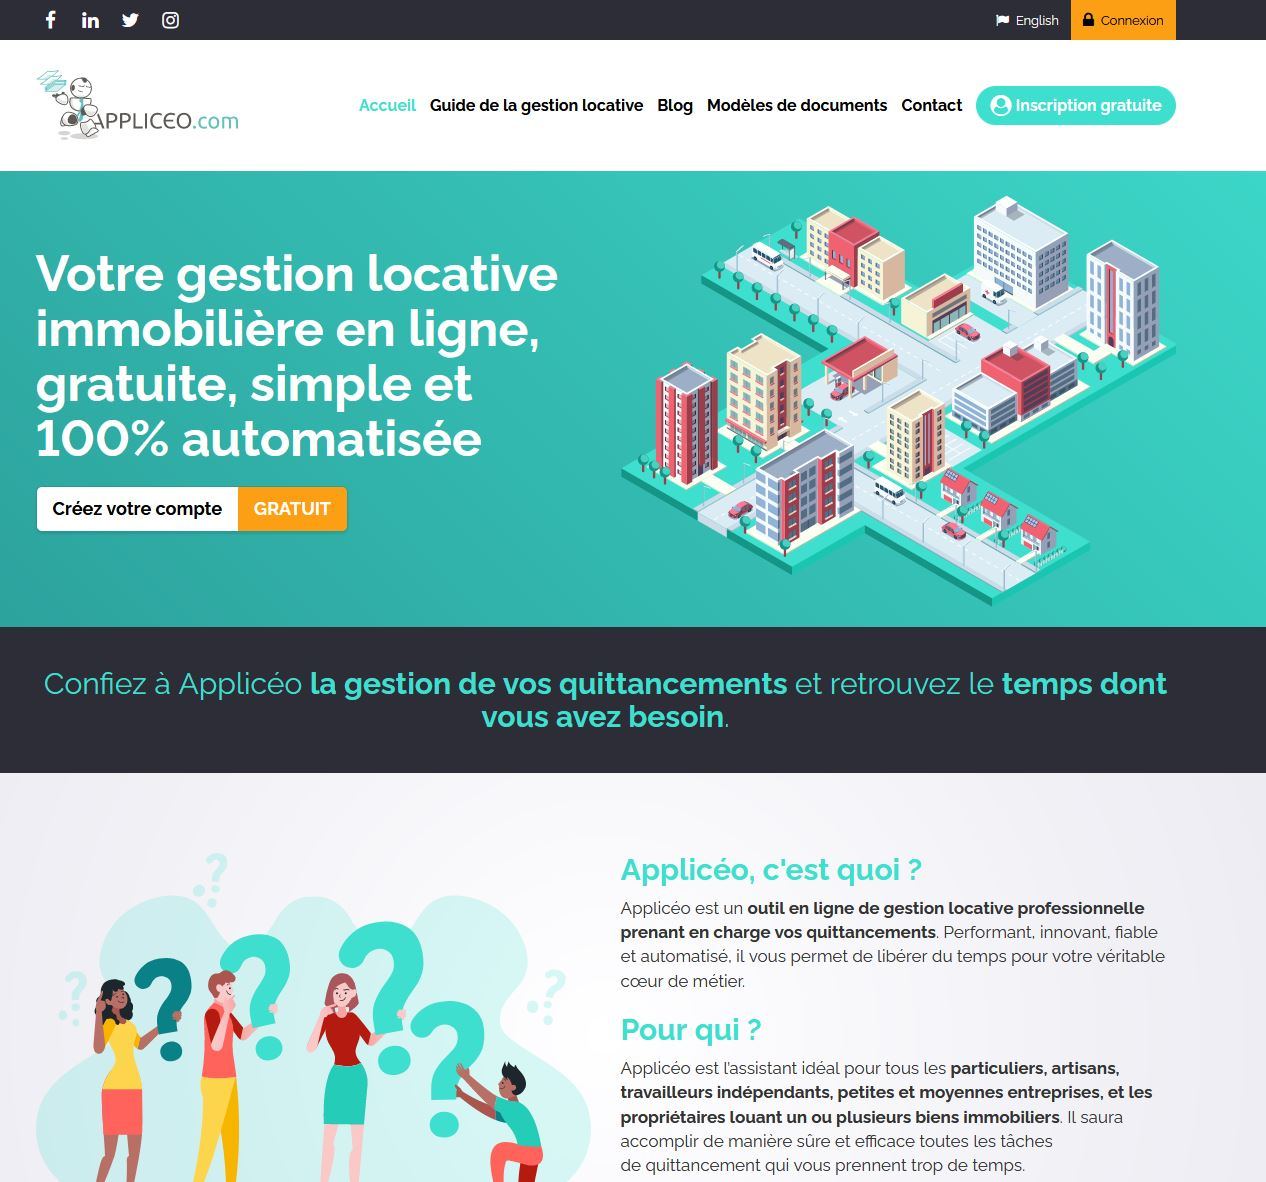 plateforme de gestion locative Appliceo